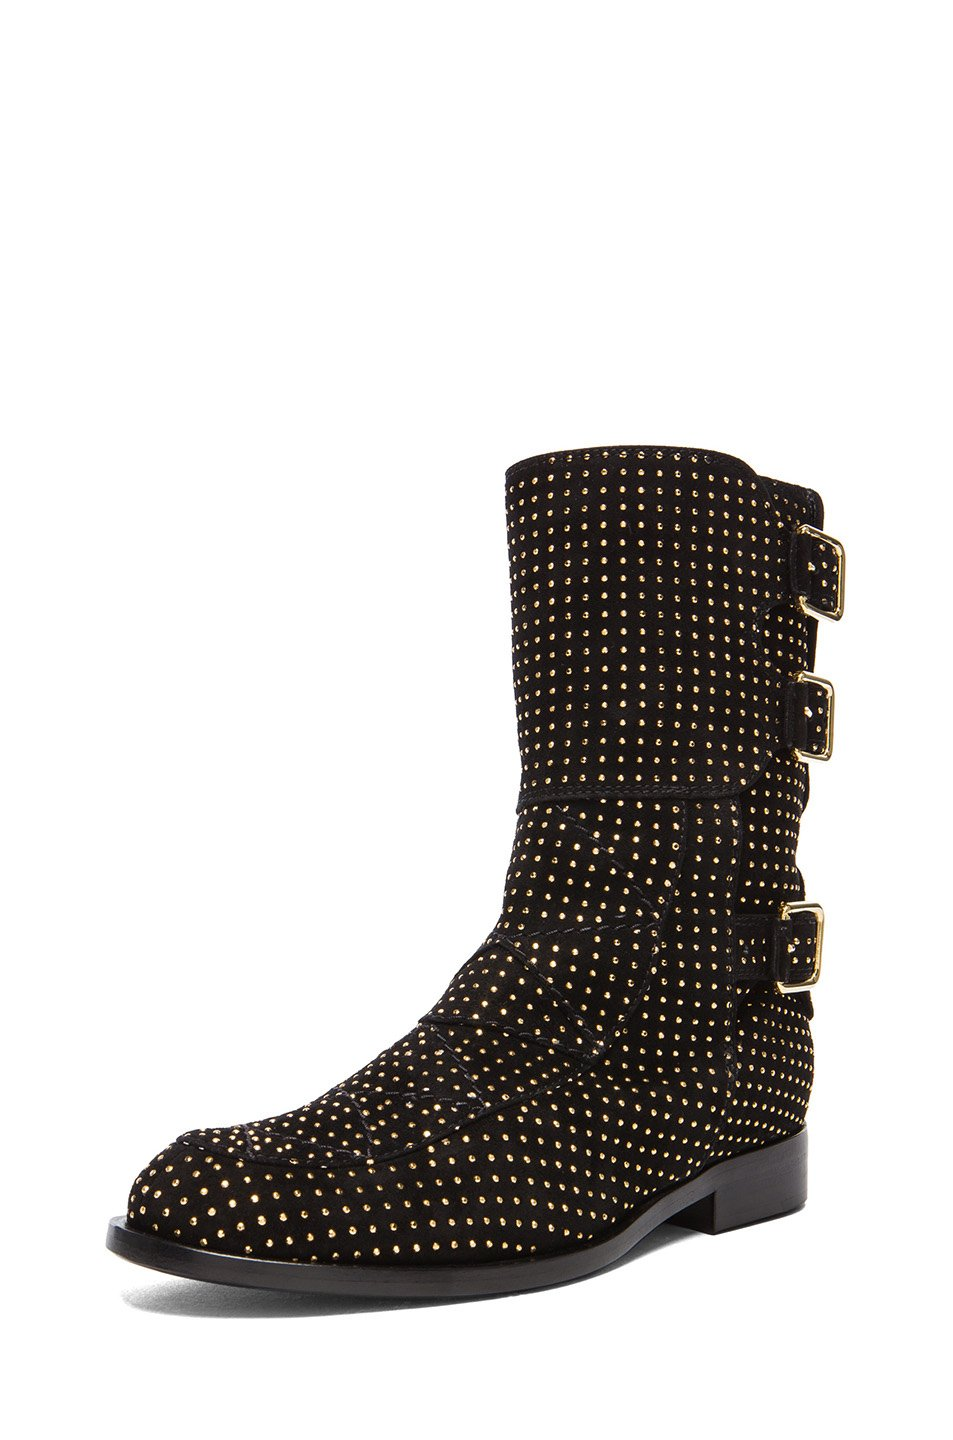 laurence dacade suede studded rick boot in black black